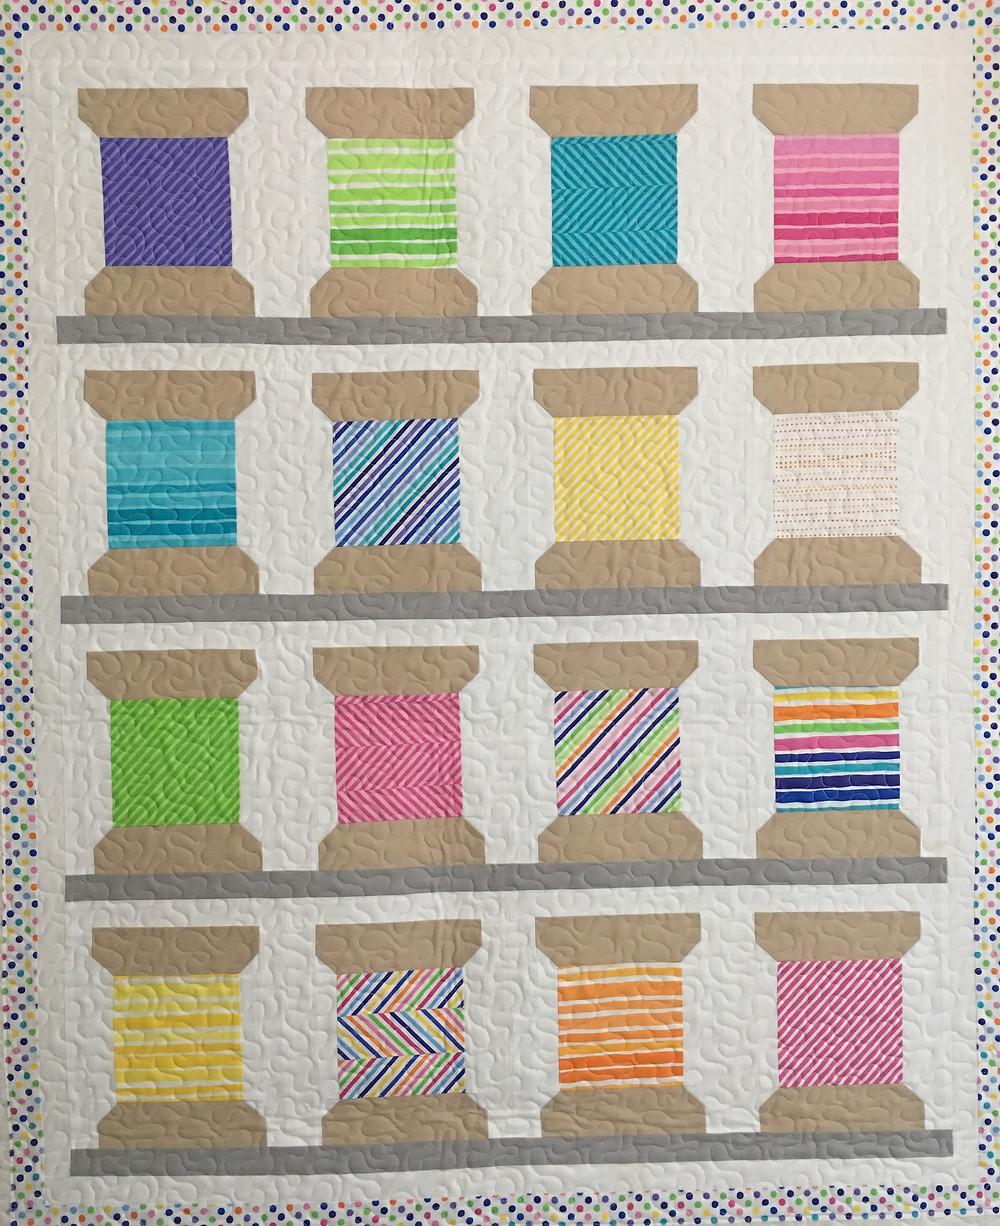 Spools of Thread quilt by Delfina Guerra